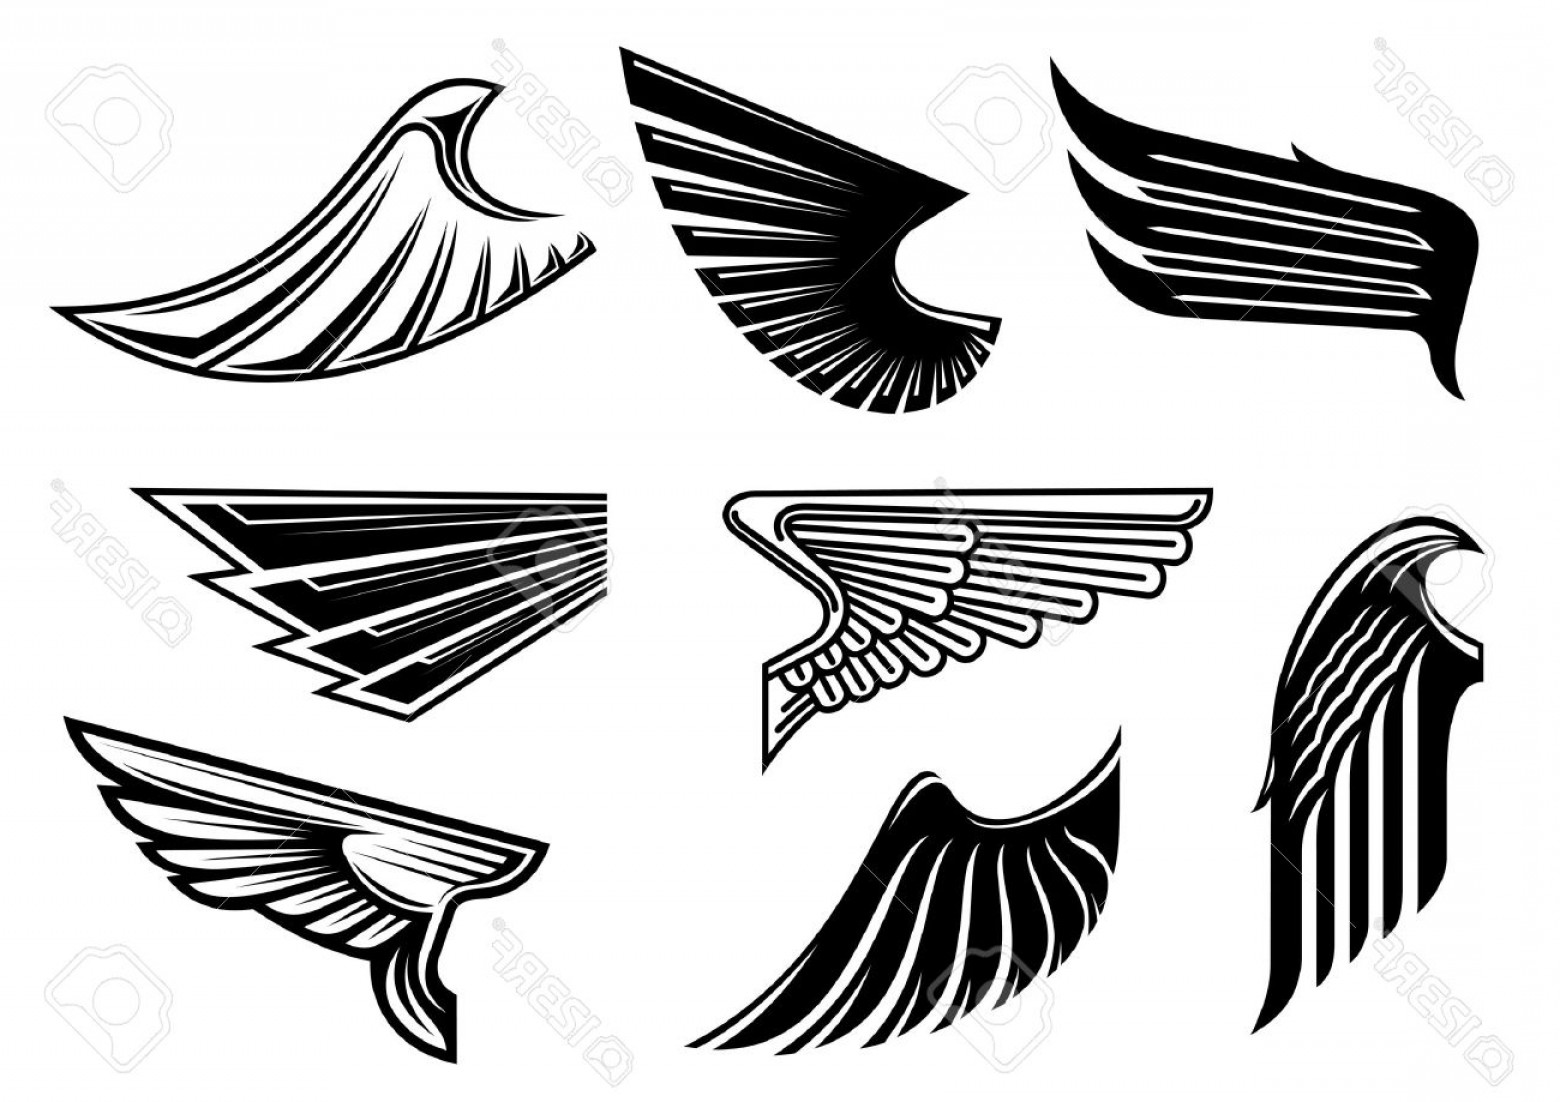 1560x1102 Photostock Vector Black Tribal Wings With Pointed Feathering